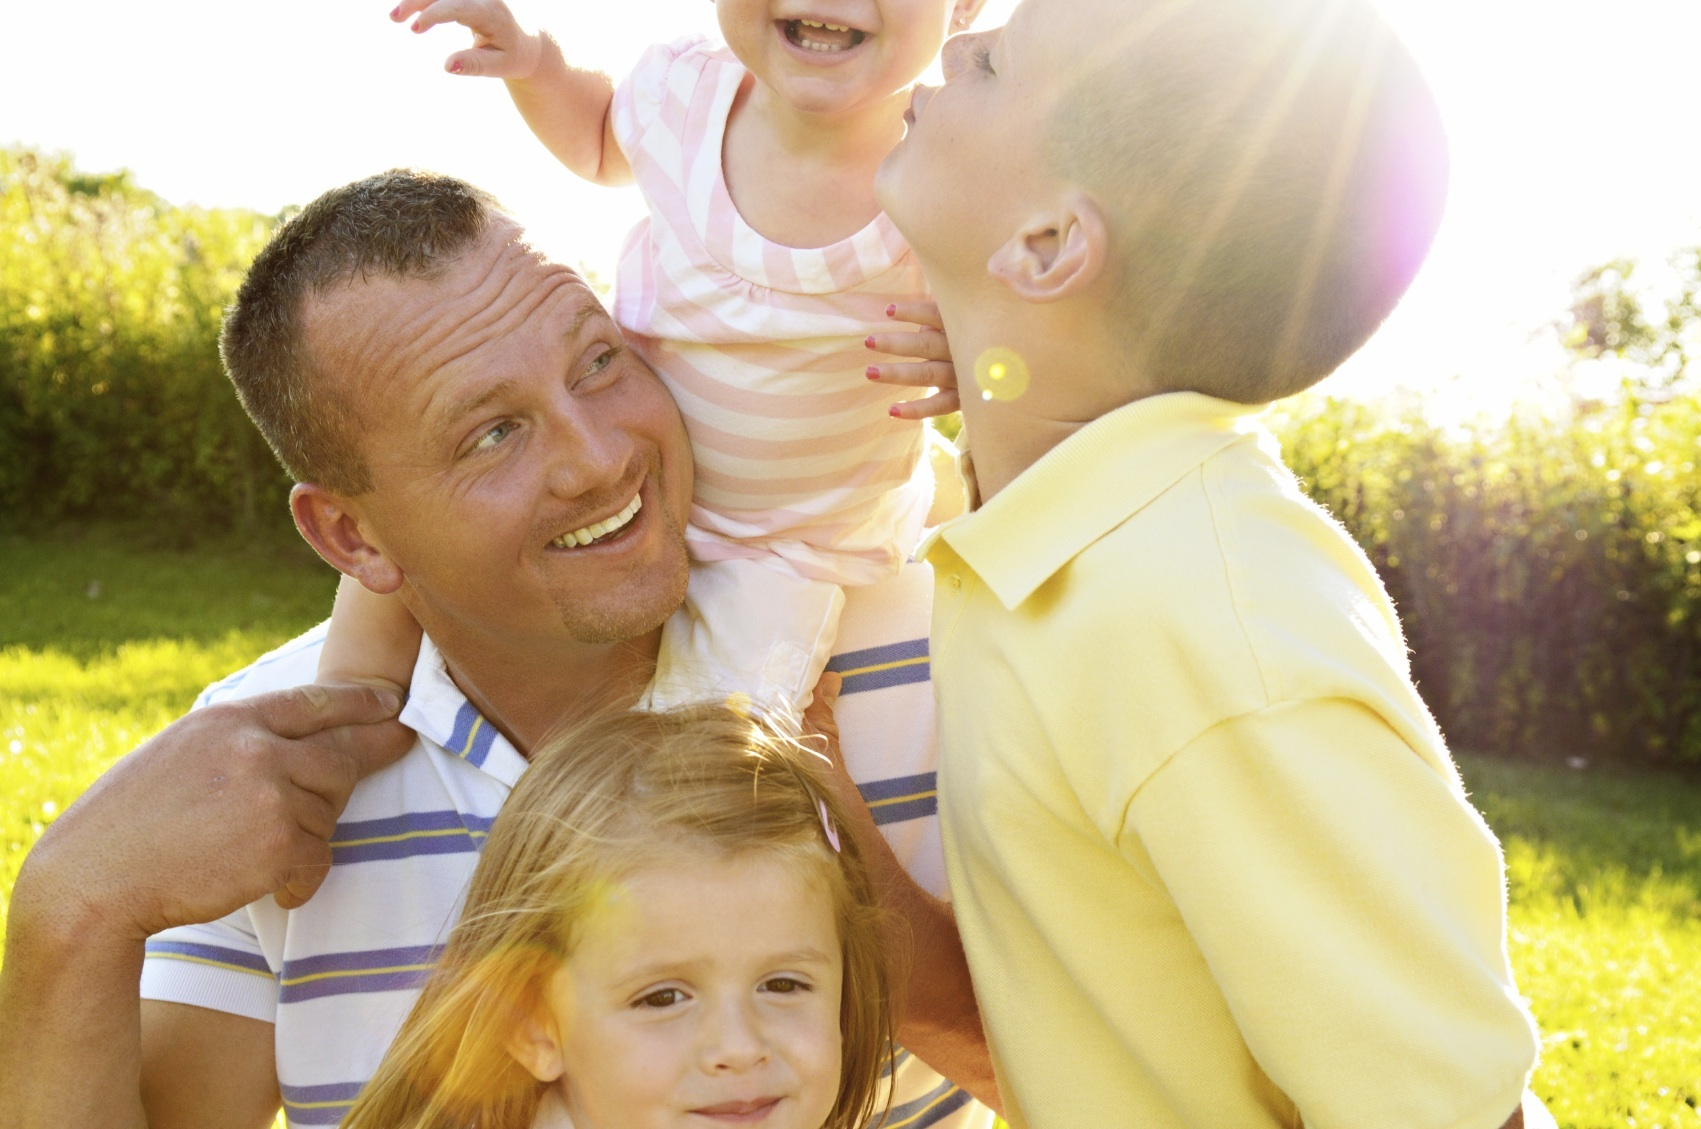 knoxboro single parent personals Expand your social circle with clark mills single parents on the best free internet social site for clark mills singles with children connect with other single parents in clark mills and share the experience of single parenthood with people who understand you.